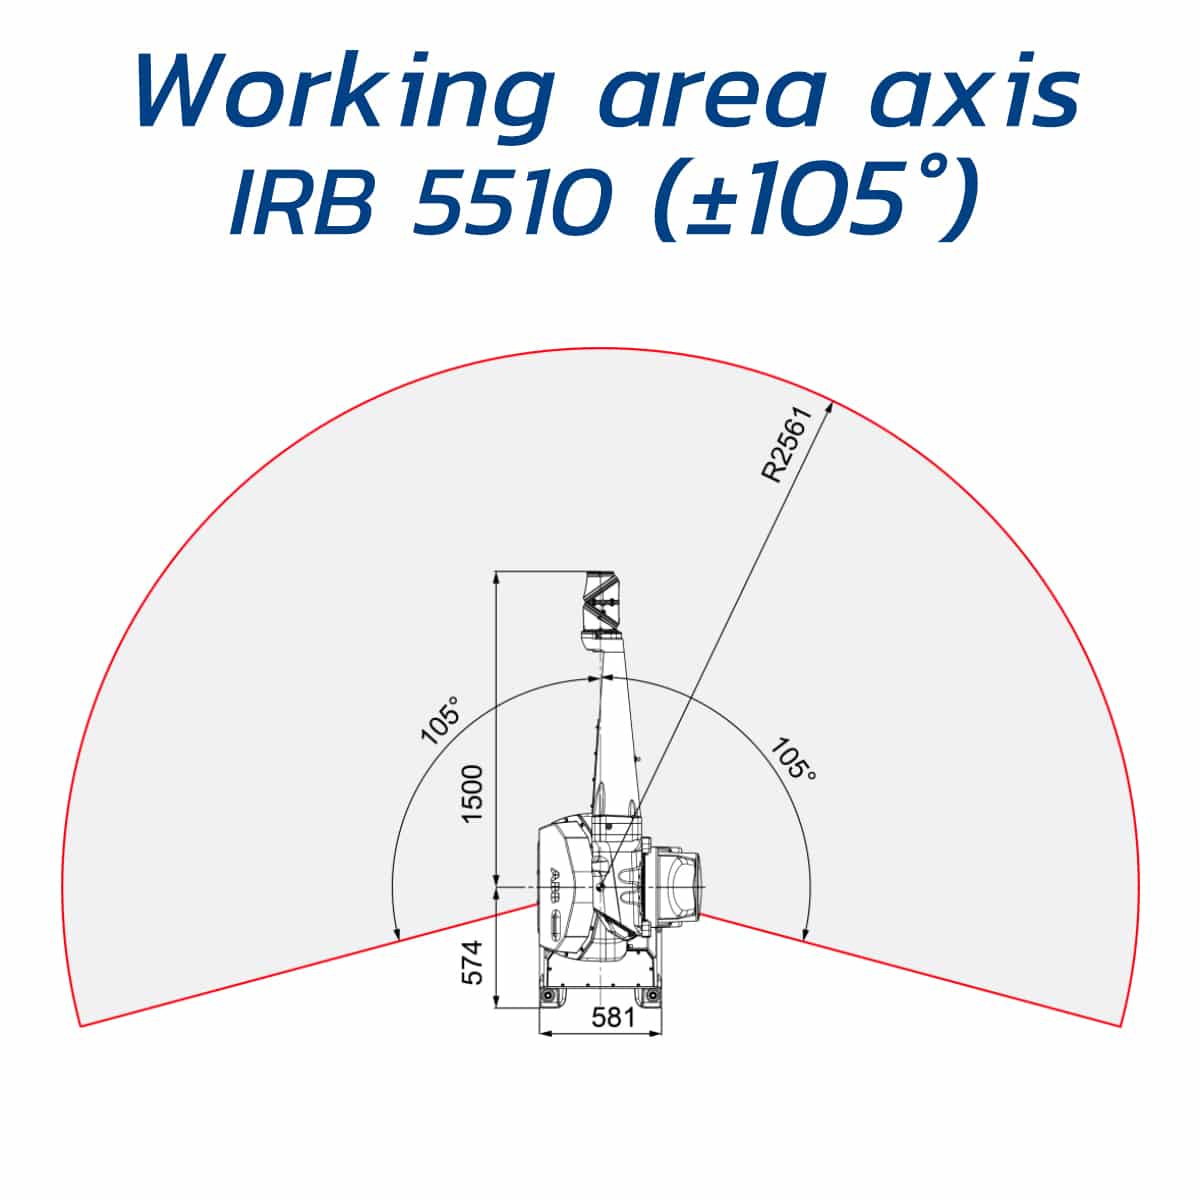 Working area axis abb irb 5510